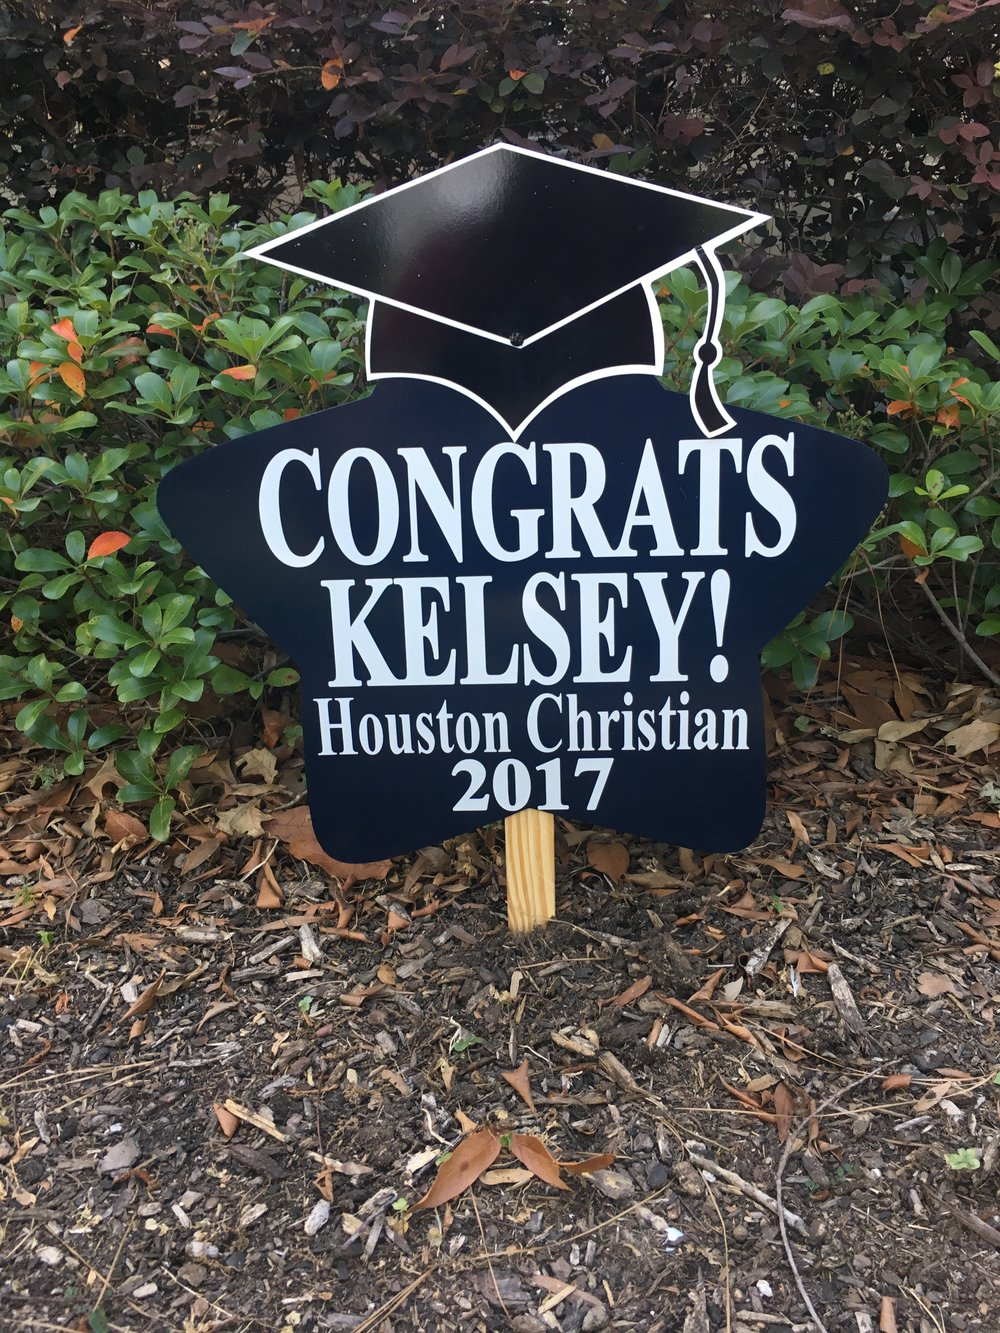 graduation yard signs are here one sign day new baby and